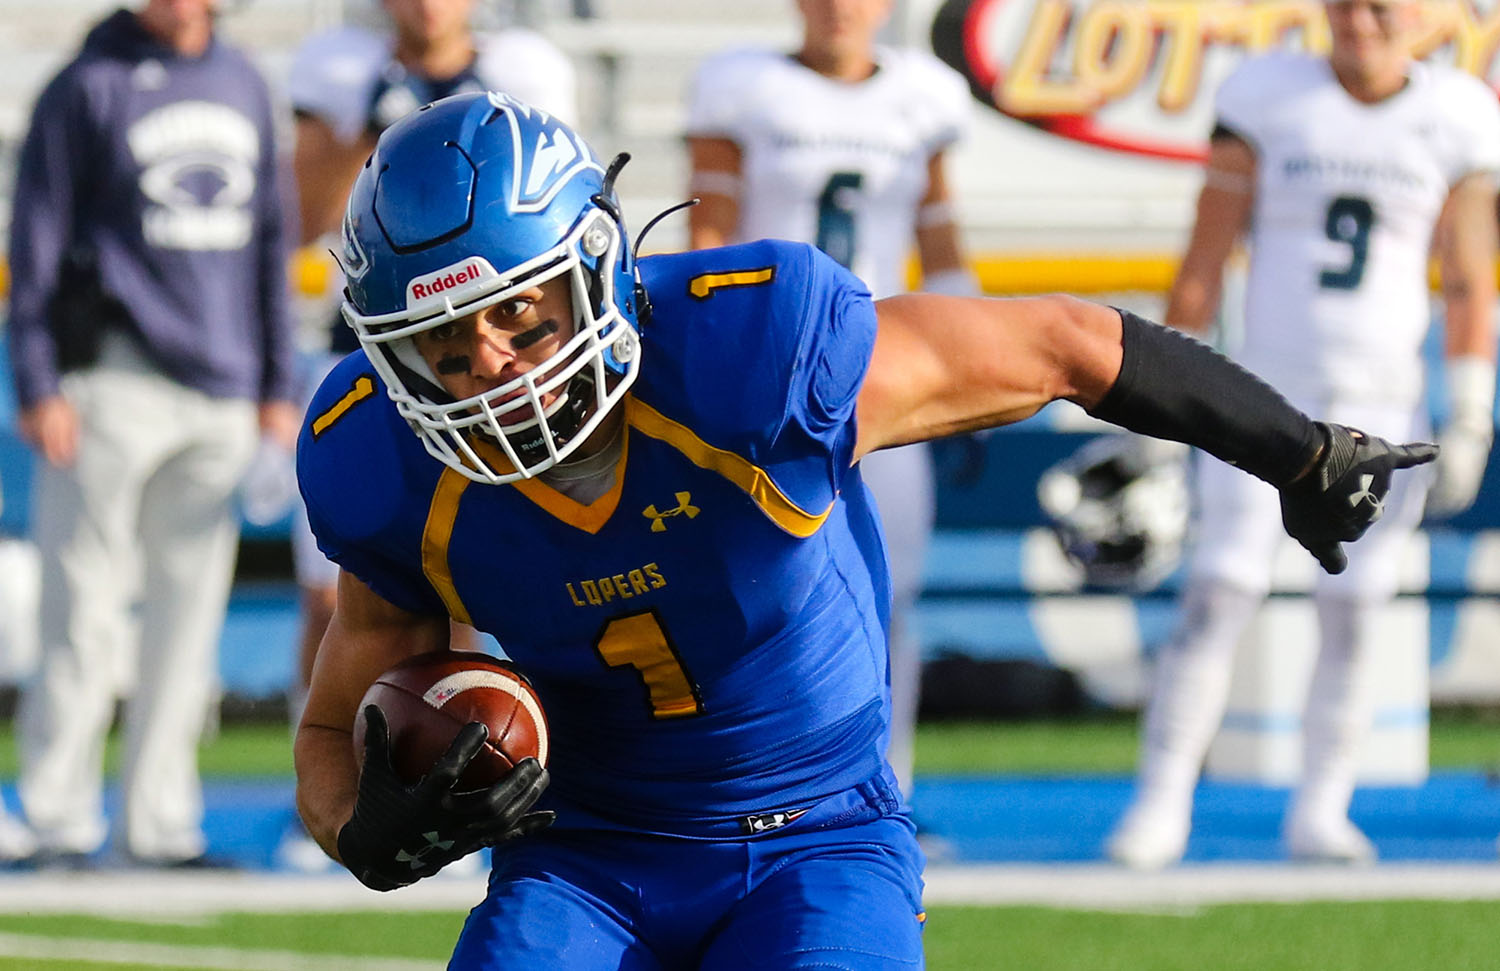 Luke Quinn, a sixth-year senior from Scottsdale, Arizona, enters Saturday's Mineral Water Bowl with 2,313 all-purpose yards and 20 touchdowns during his UNK career. (UNK Communications)